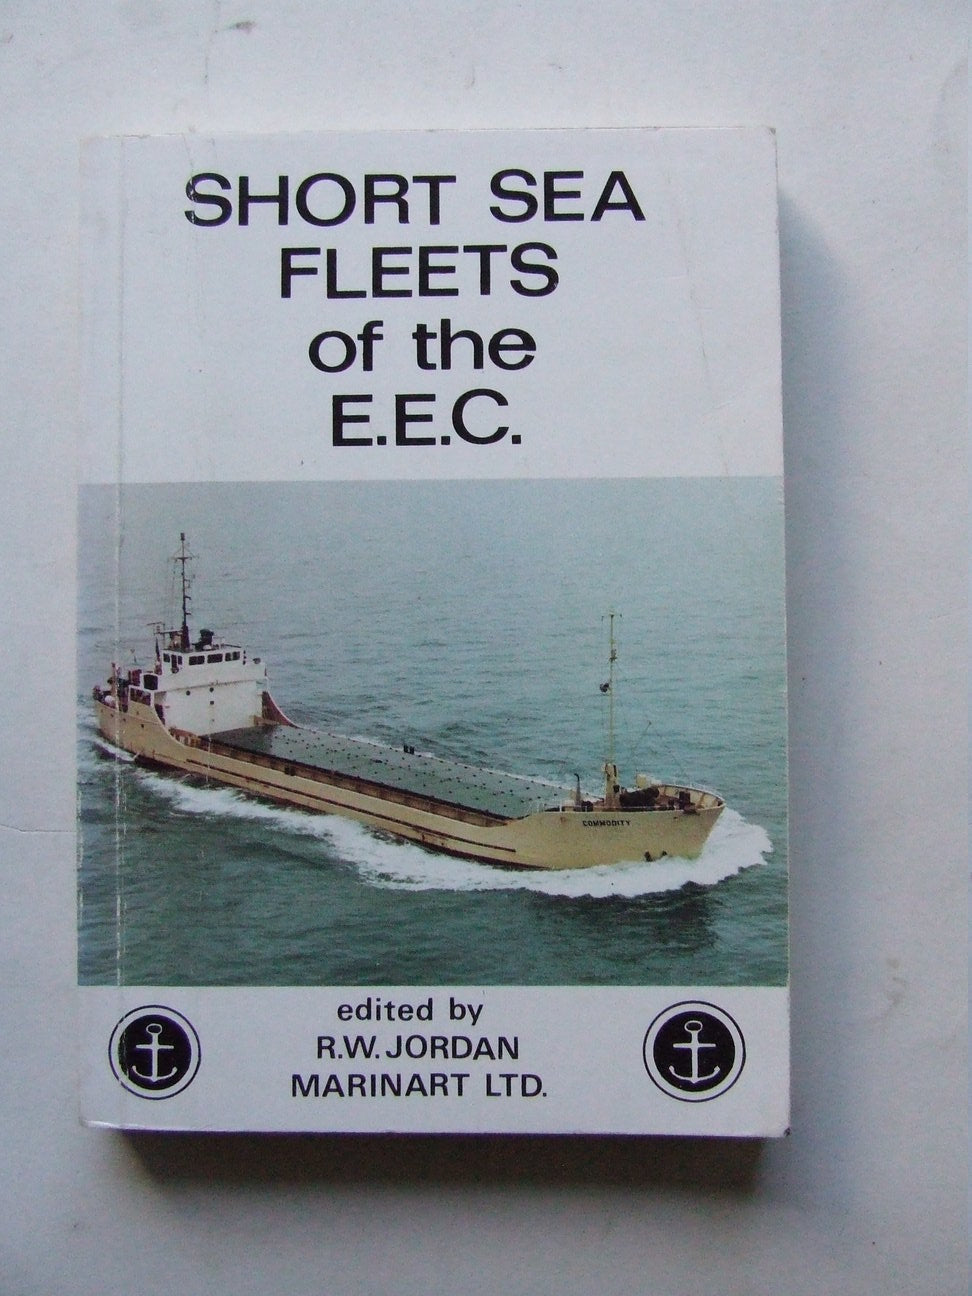 Short Sea Fleets of the E.E.C.